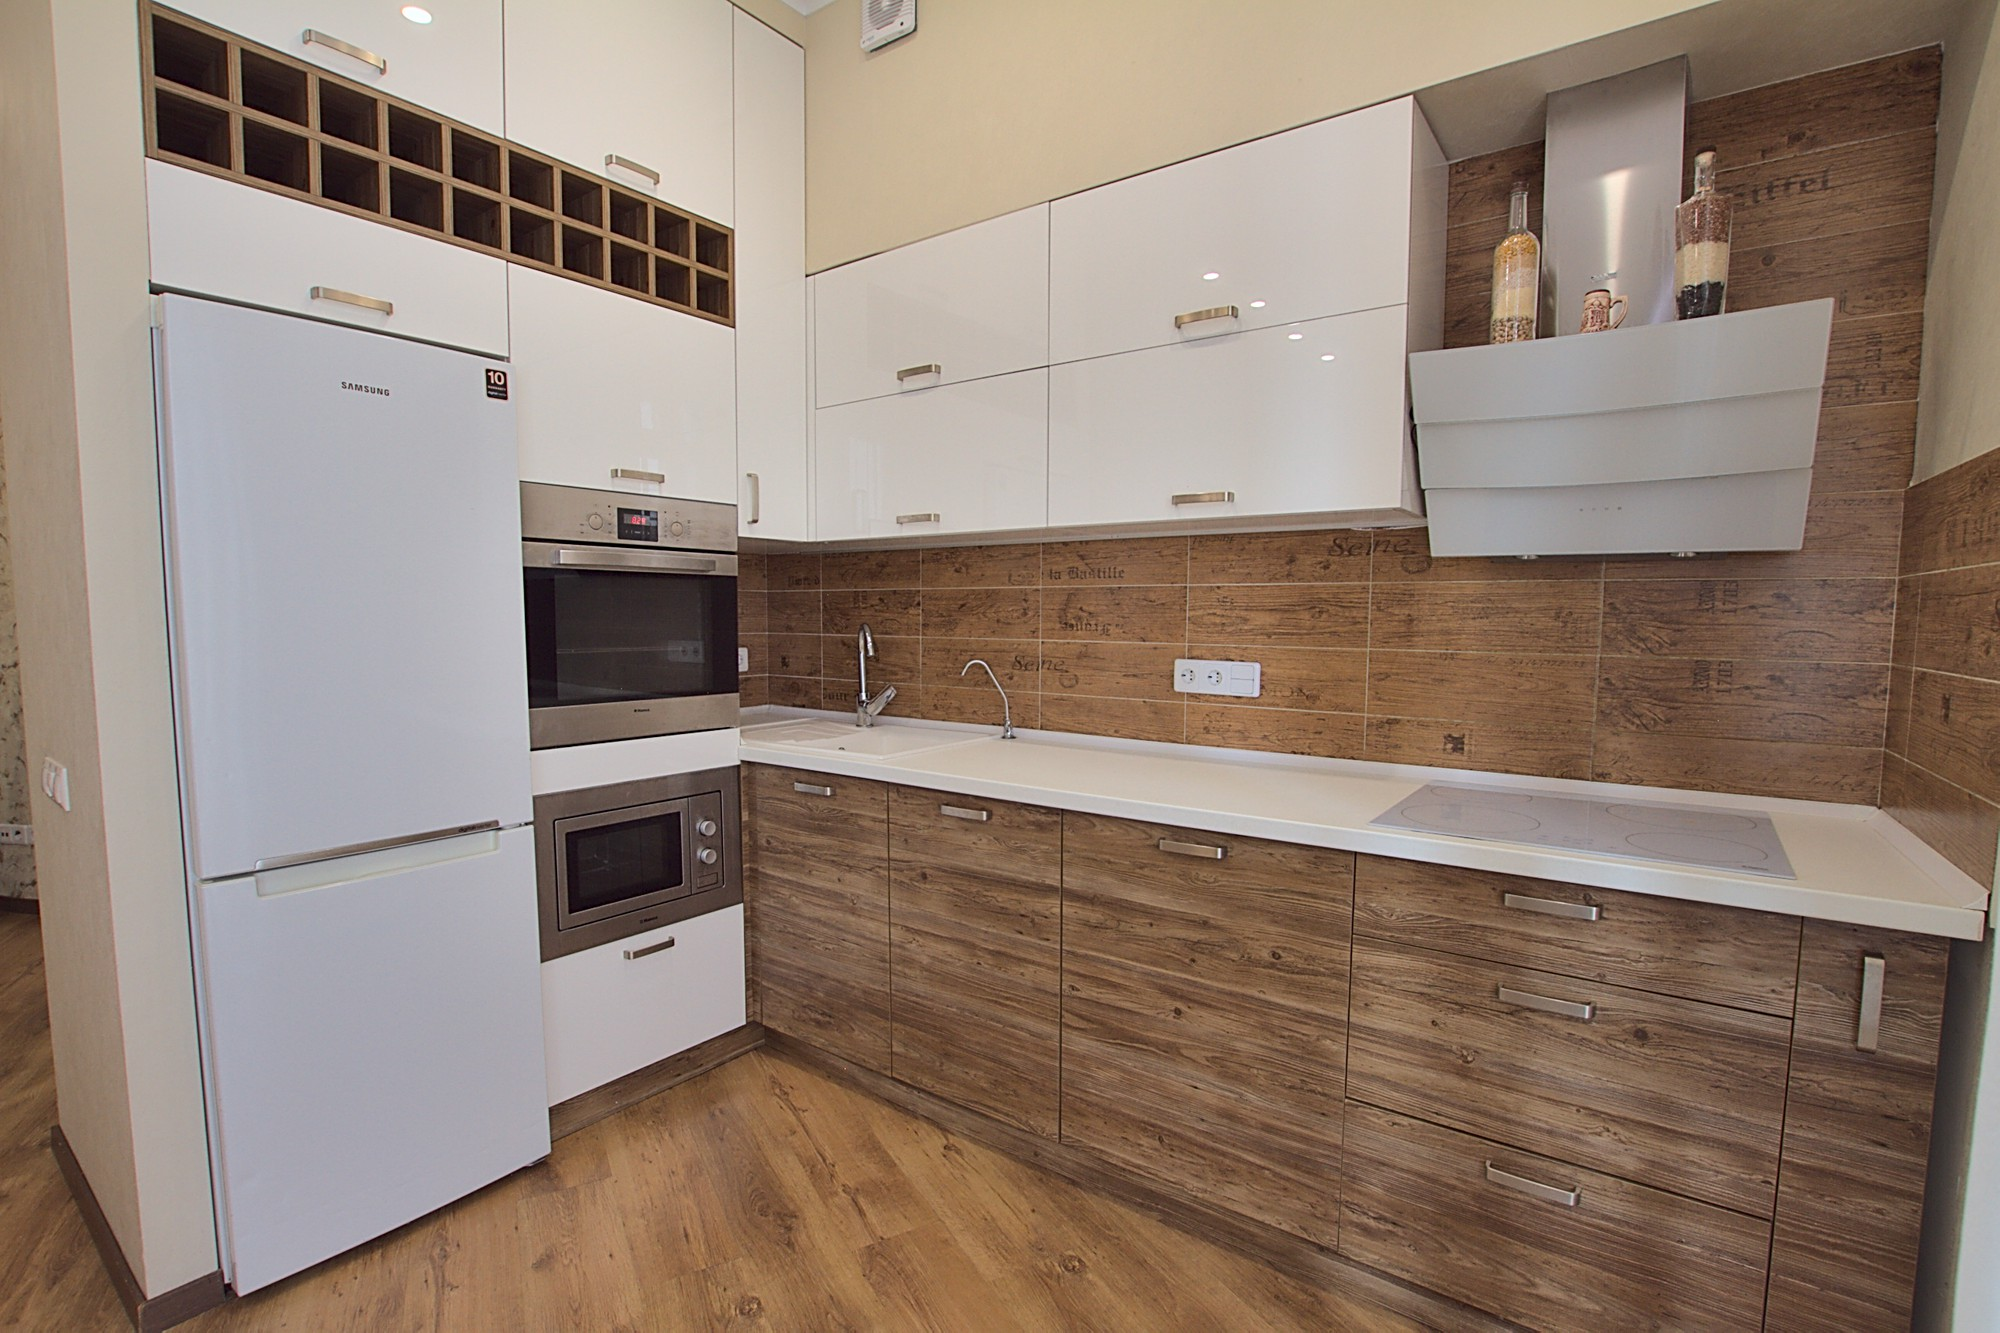 Rent_Apartment_in_Chisinau_at_Colisem_01.jpg